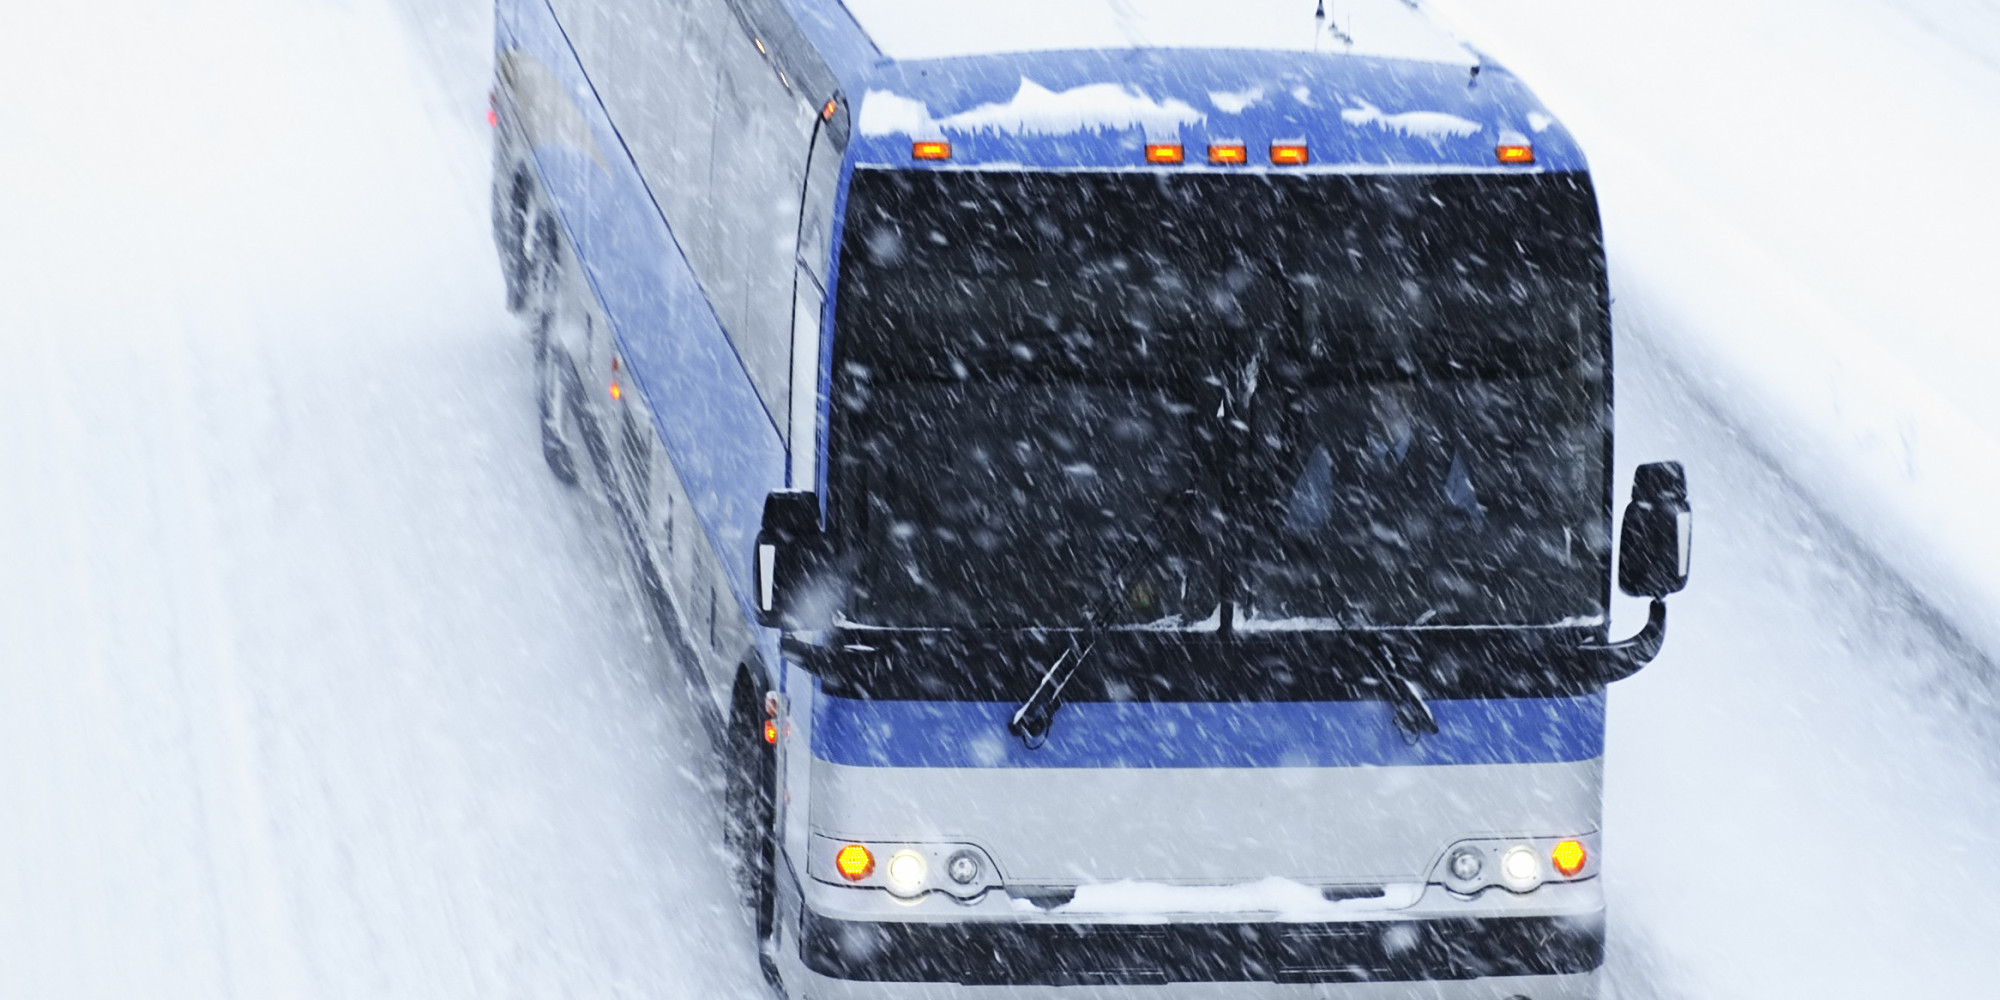 o-GREYHOUND-BUS-SNOW-facebook-1